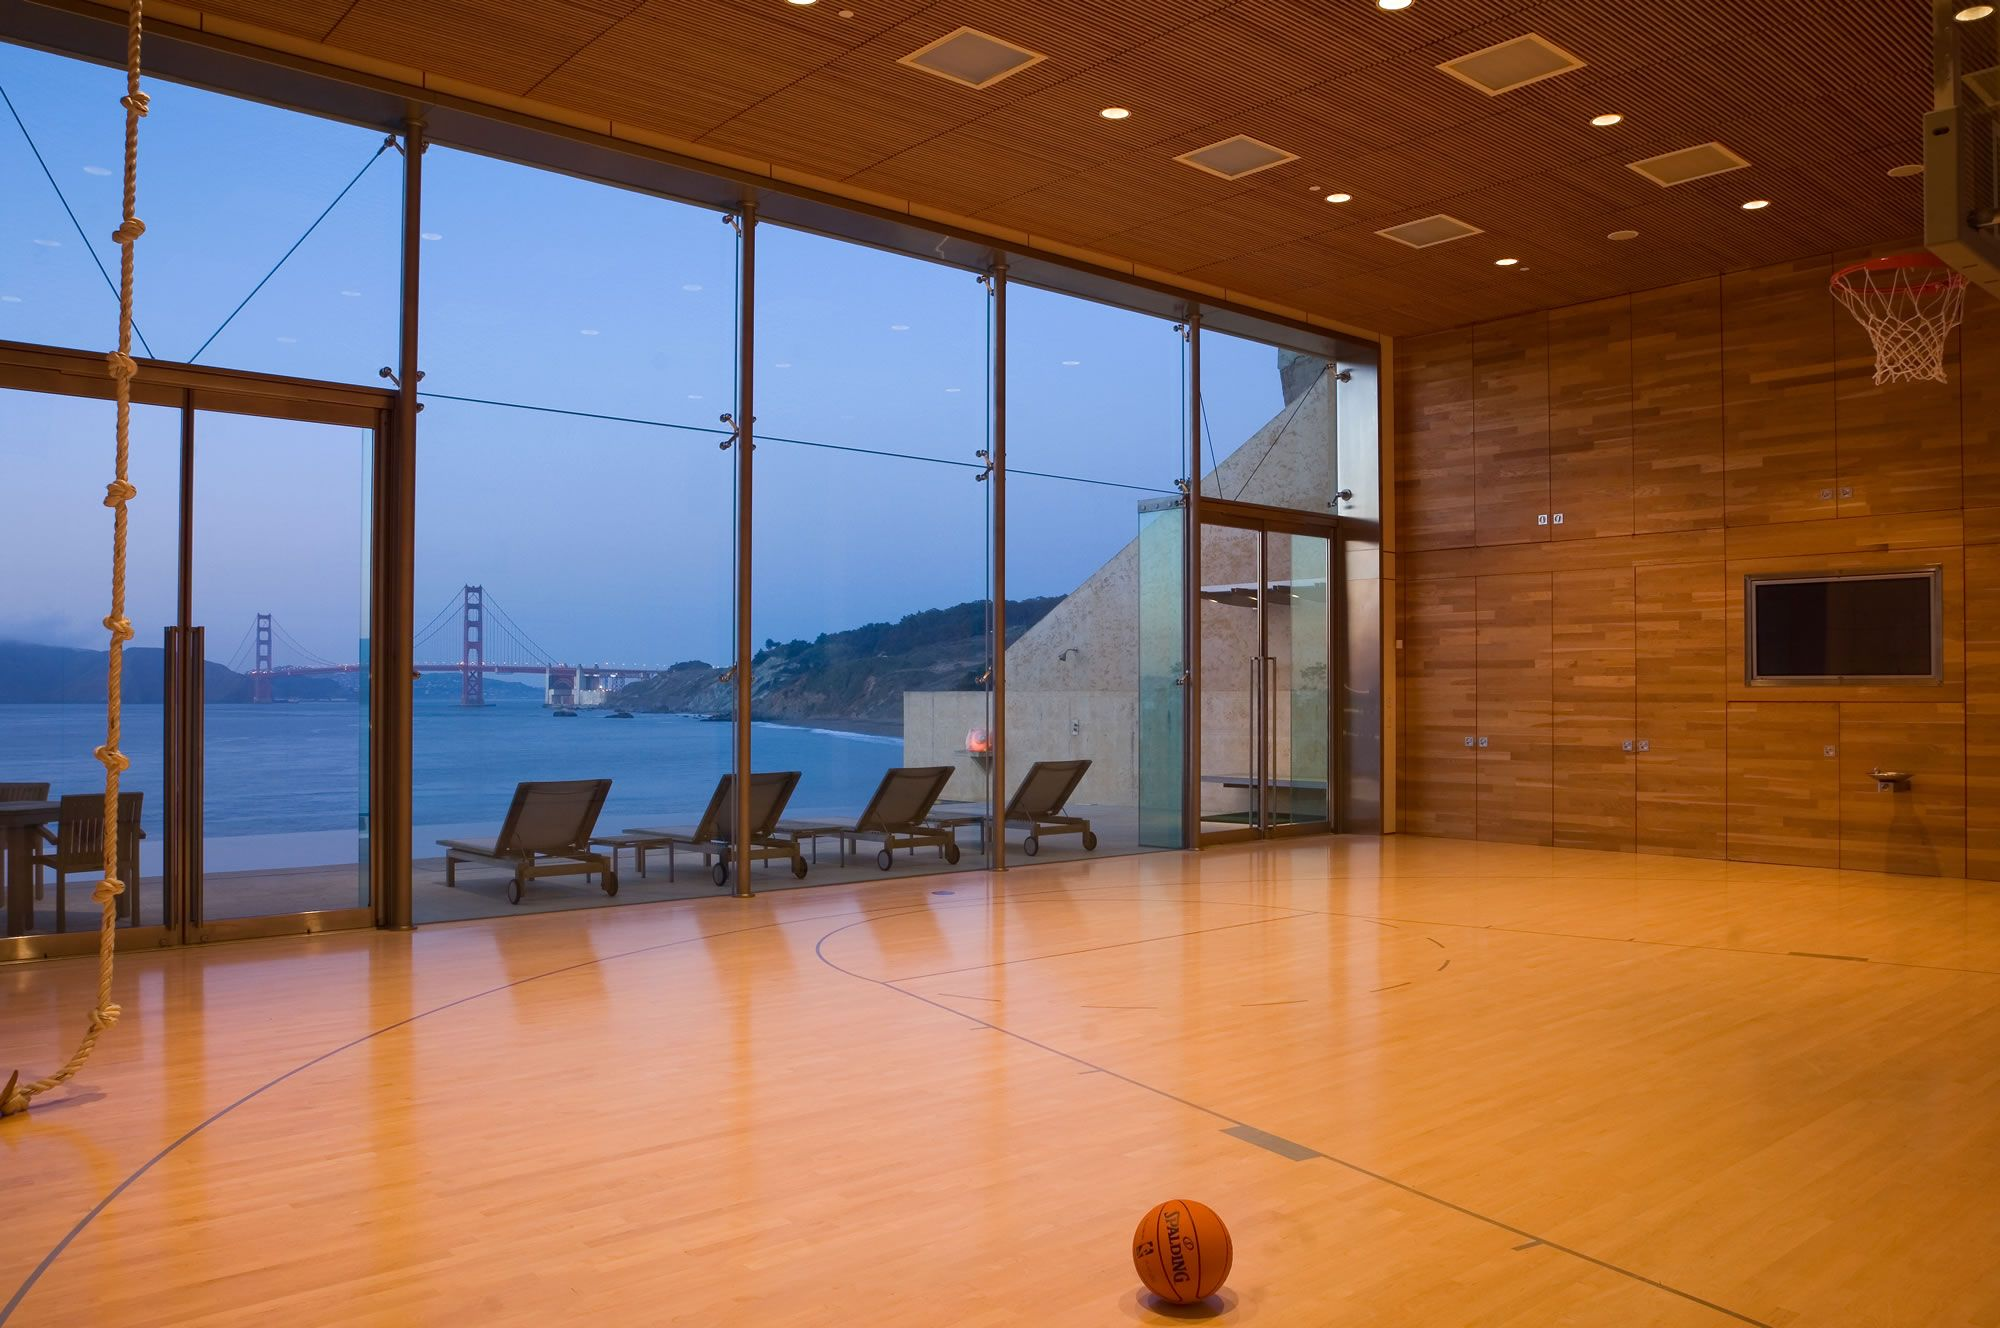 Sea Cliff Addition Stephen Willrich Architecture Indoor Basketball Court Indoor Basketball Home Basketball Court